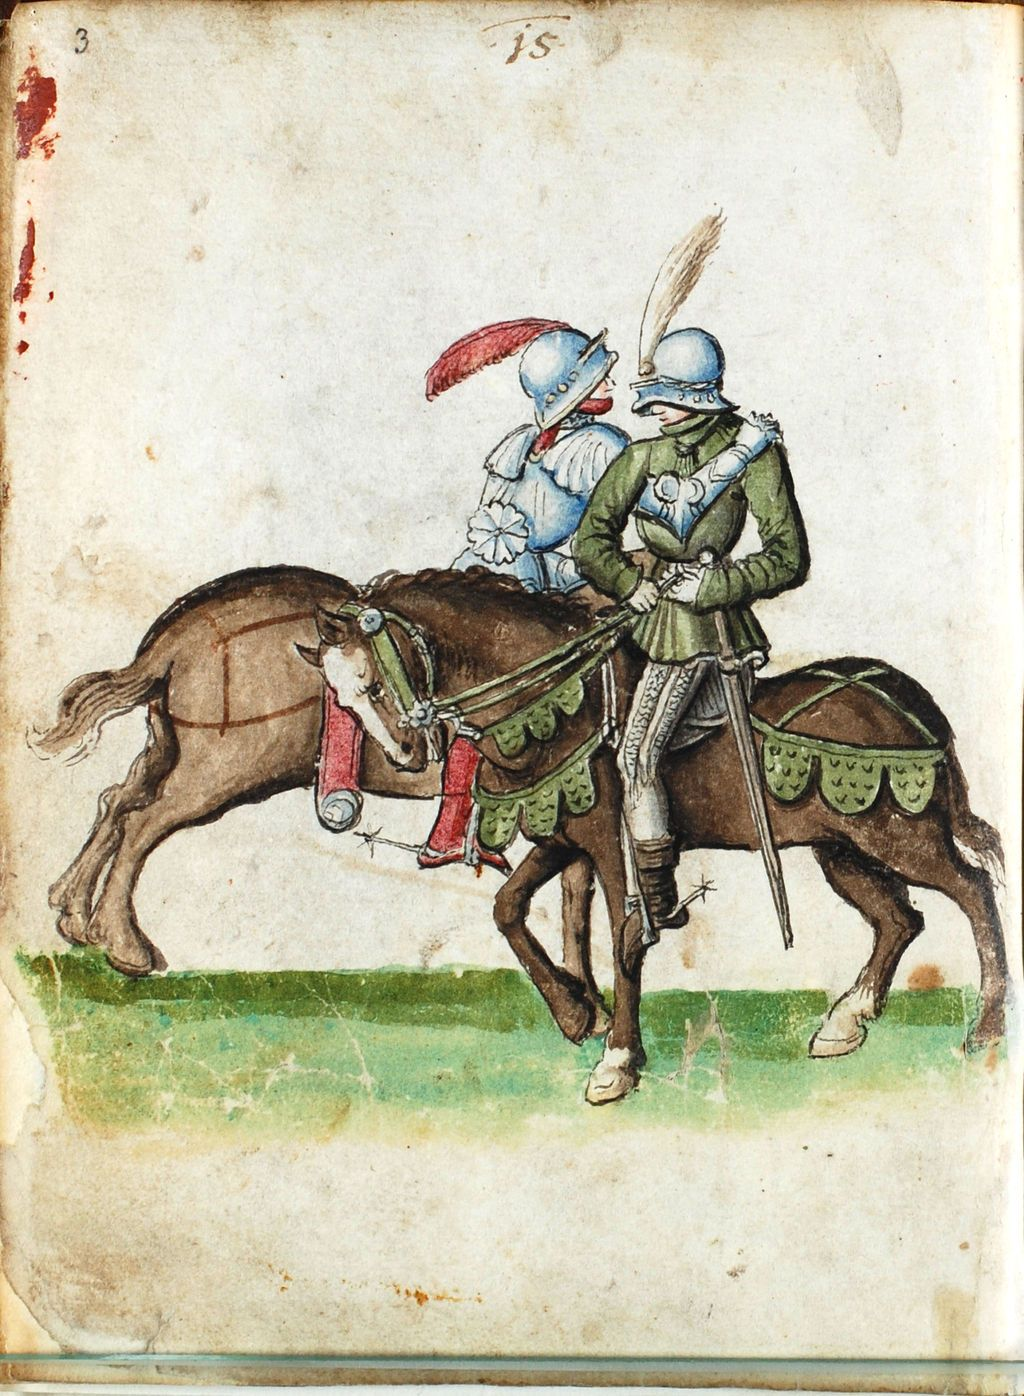 The Codex S.554 is an early 16th century copy of Paulus Kal's fencing manual of ca. 1470. The original currently rests in the holdings of the Zentralbibliothek Solothurn in Solothurn, Switzerland. The paper of the manuscript bears a watermark that was used between 1506 and 1514, though it may have been created after that.[1] Unfortunately, the manuscript survives only in fragmentary form: just 30 of the original 62 folia remain, including only 57 illustrations.